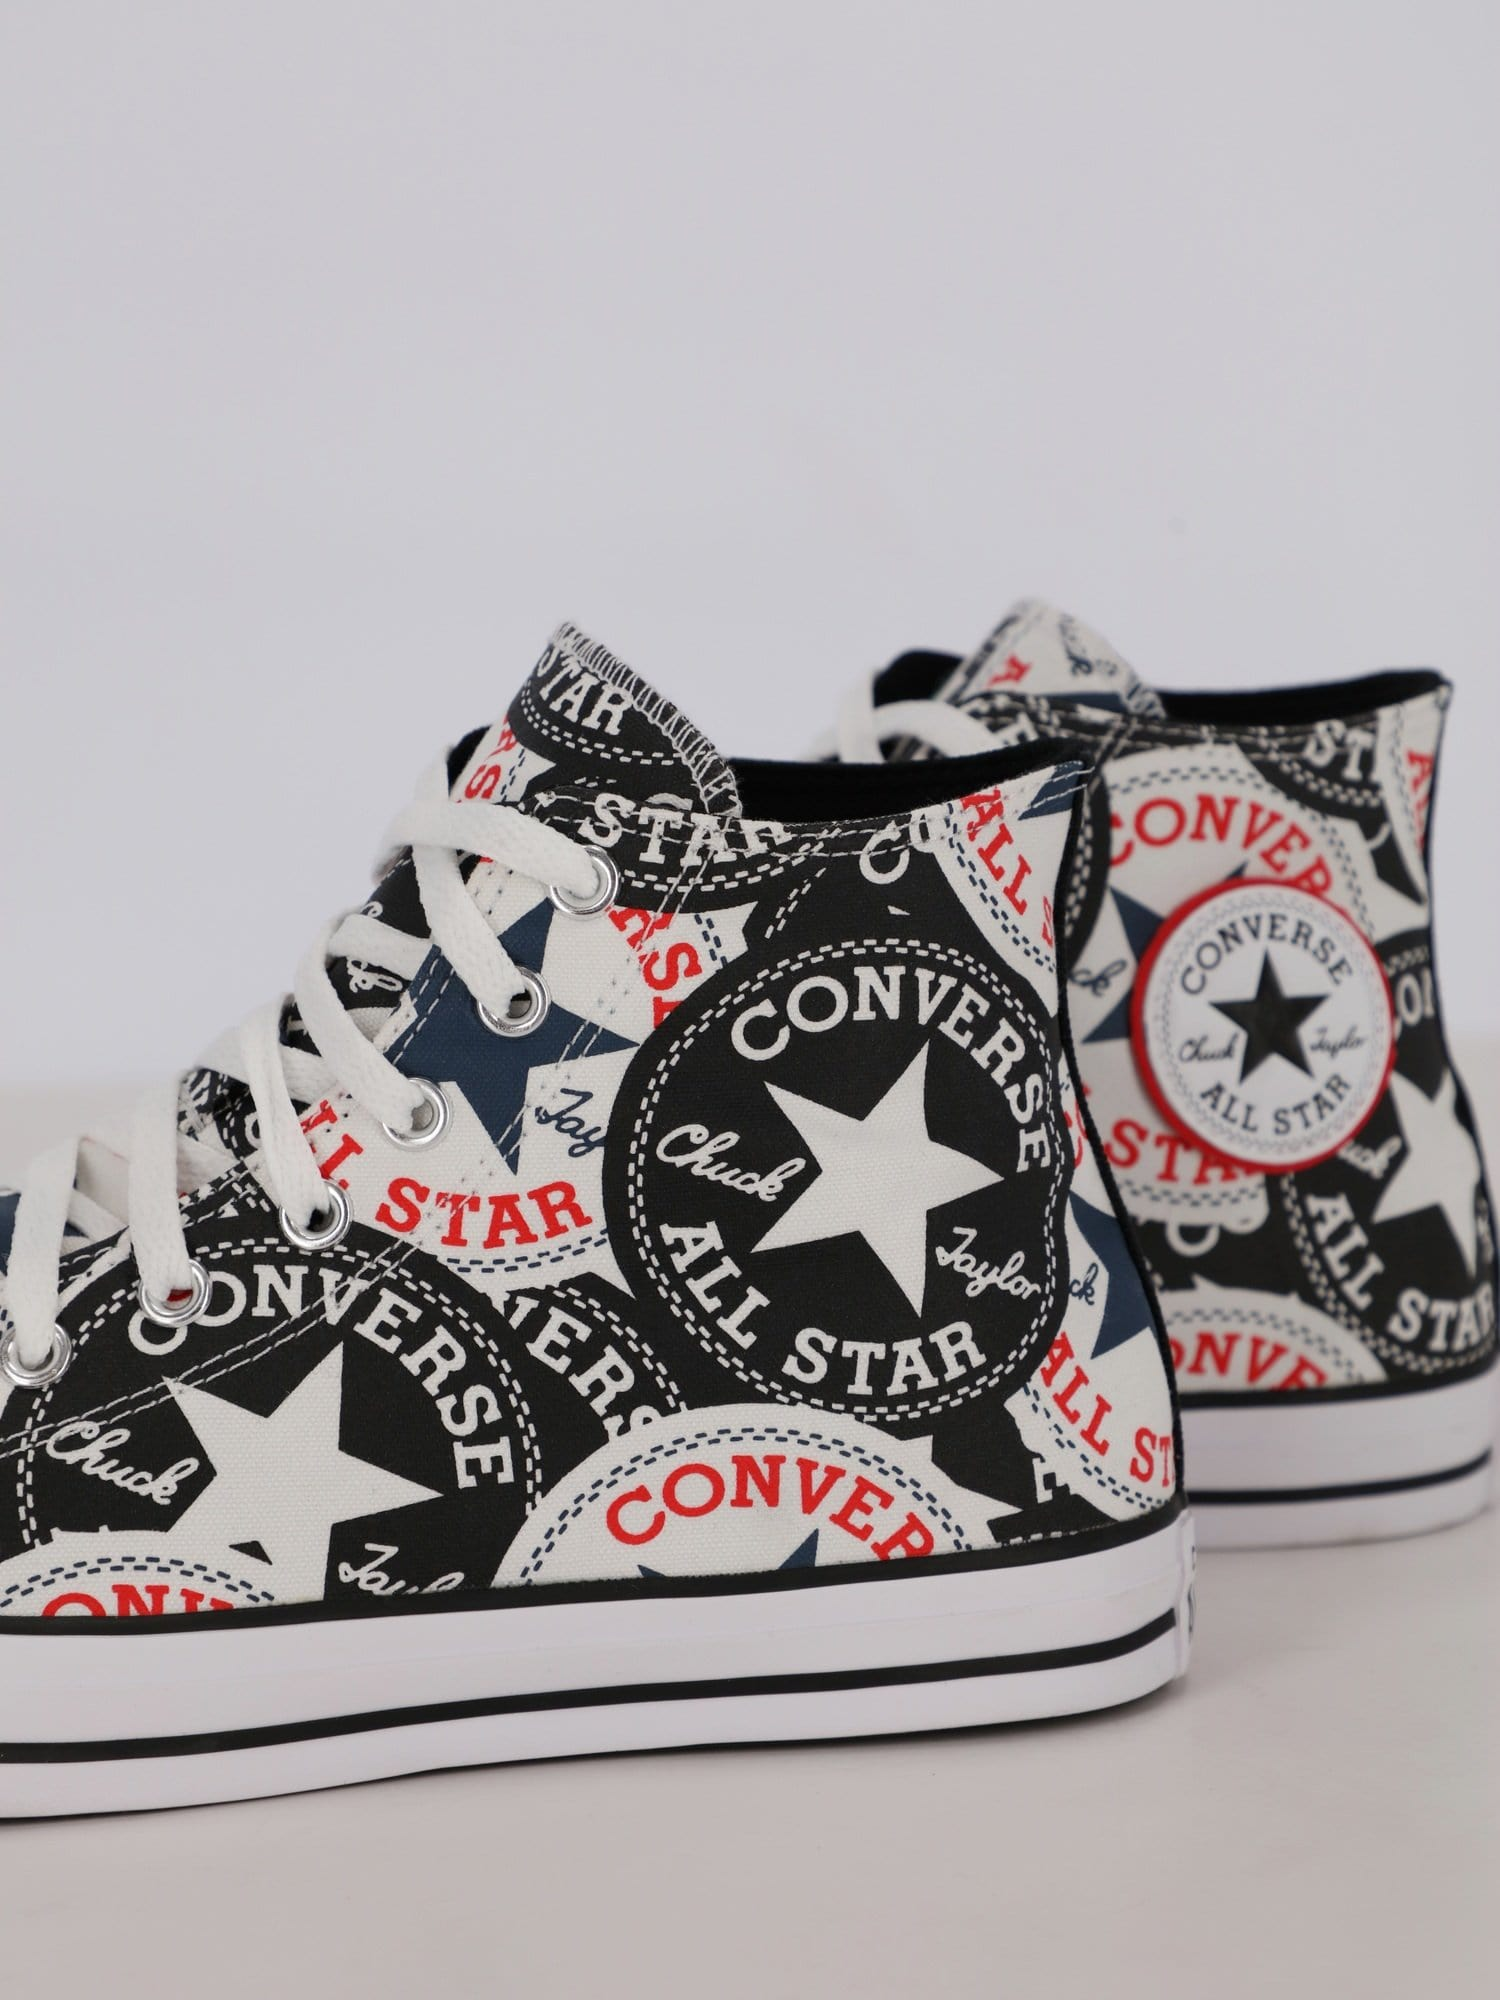 Converse Sneakers White / 44 Men's Logo Play Chuck Taylor All Star High Top Sneakers